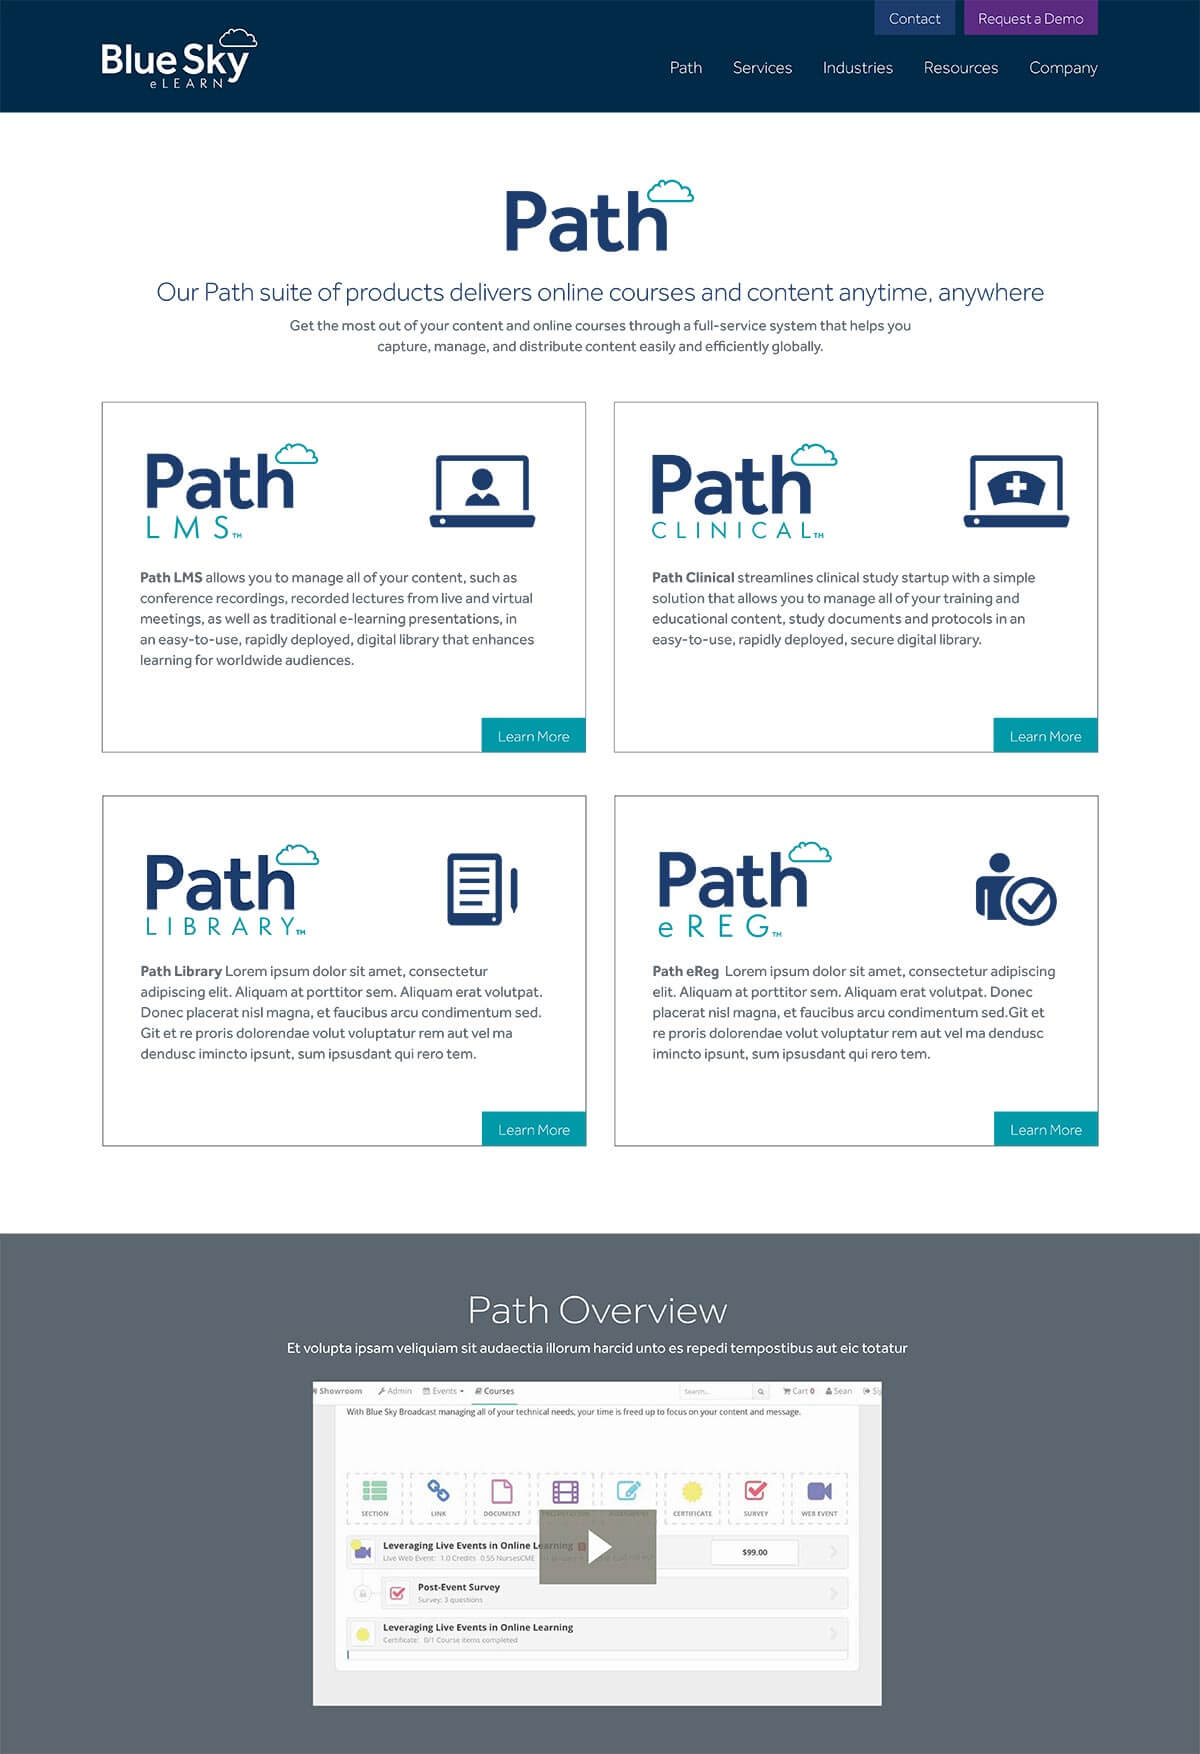 Blue Sky eLearn website path page